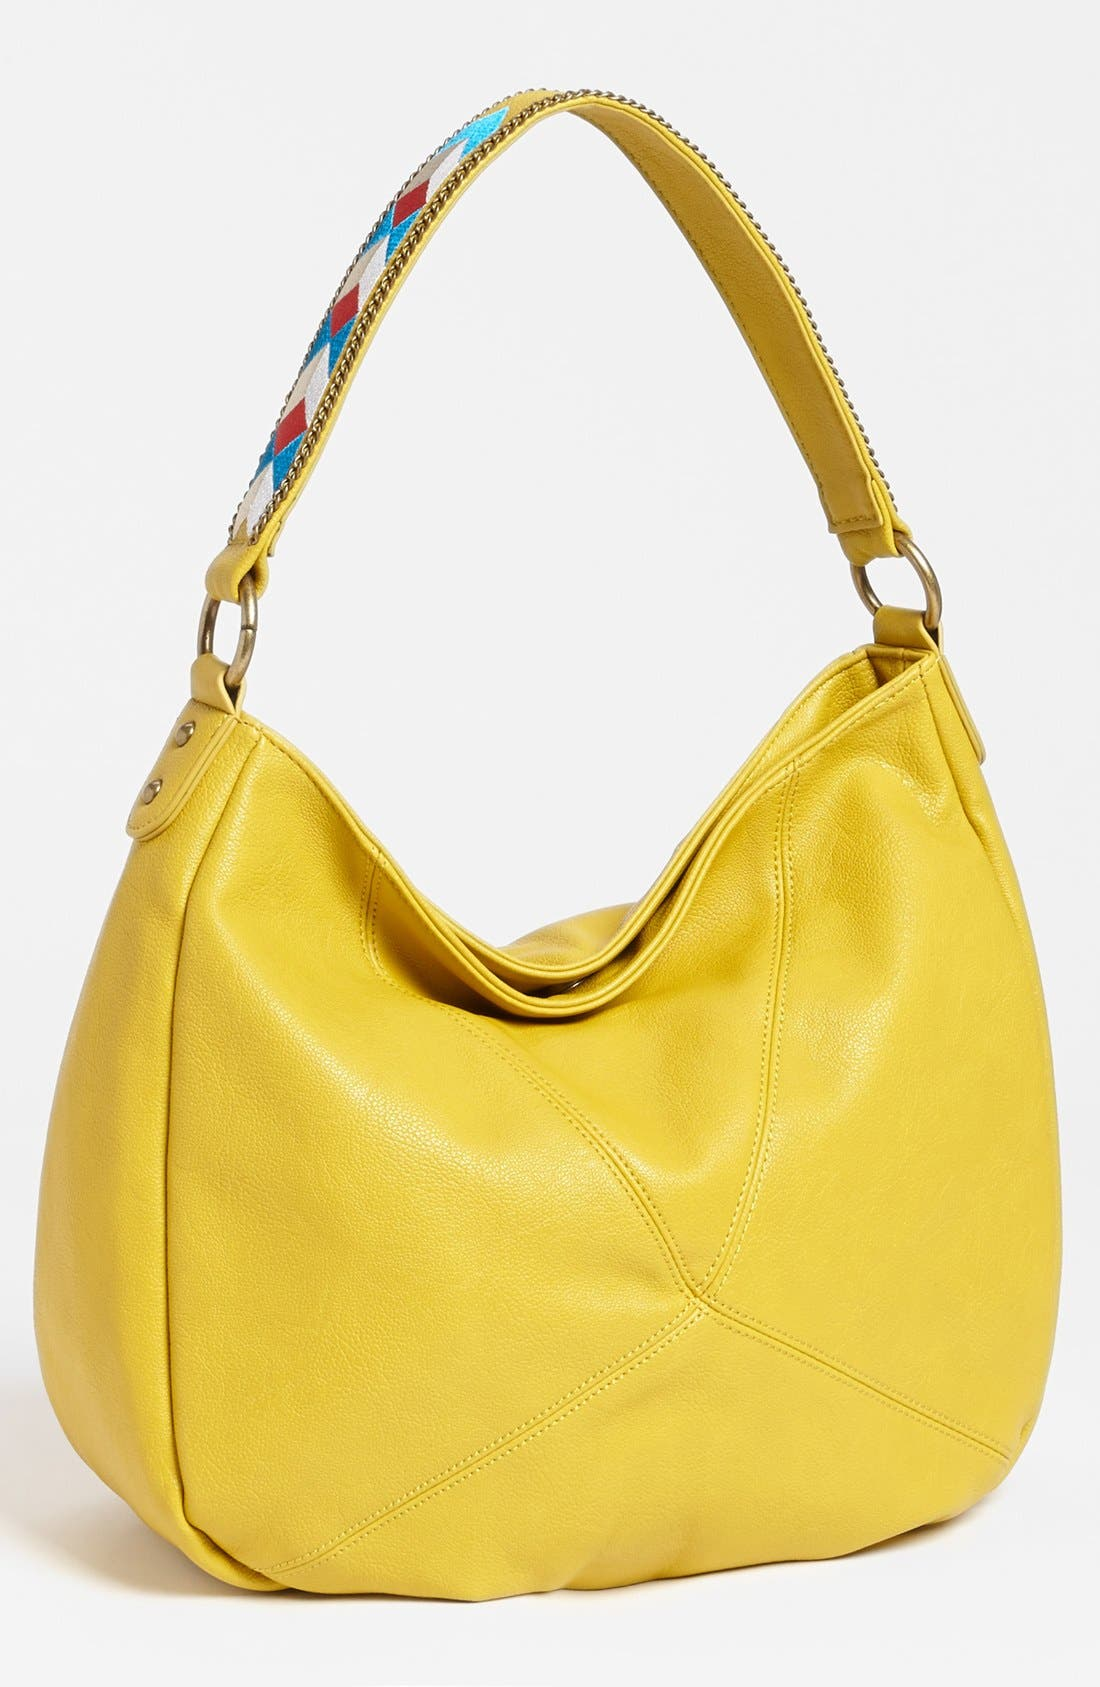 Alternate Image 1 Selected - Jessica Simpson 'Zulu' Faux Leather Hobo